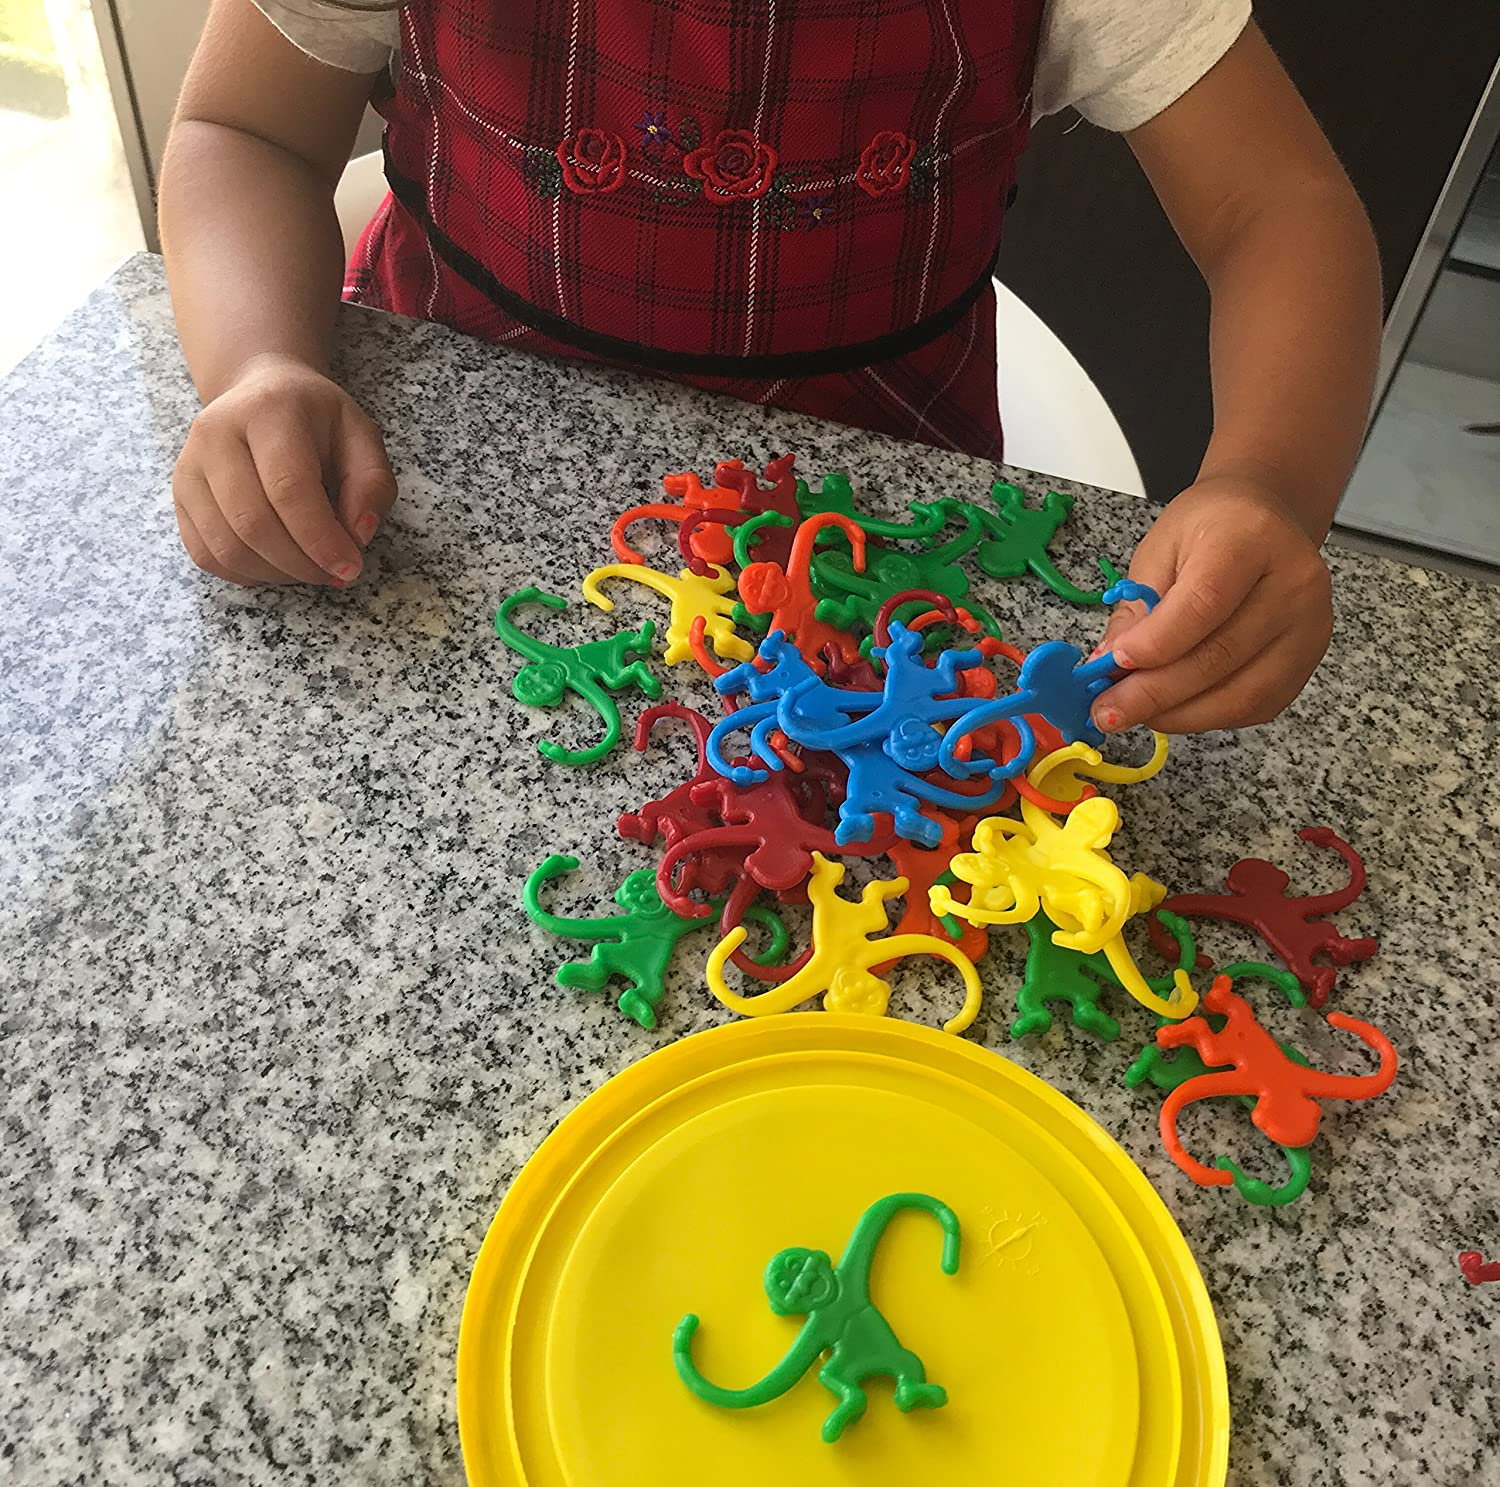 Hours of Fun for Toddlers and preschoolers 100 Colorful Pieces Bucket. Motor Skills Developing and Counting Toy for Toddlers and Kids Color Sorting Linking Bucket of Monkeys Game